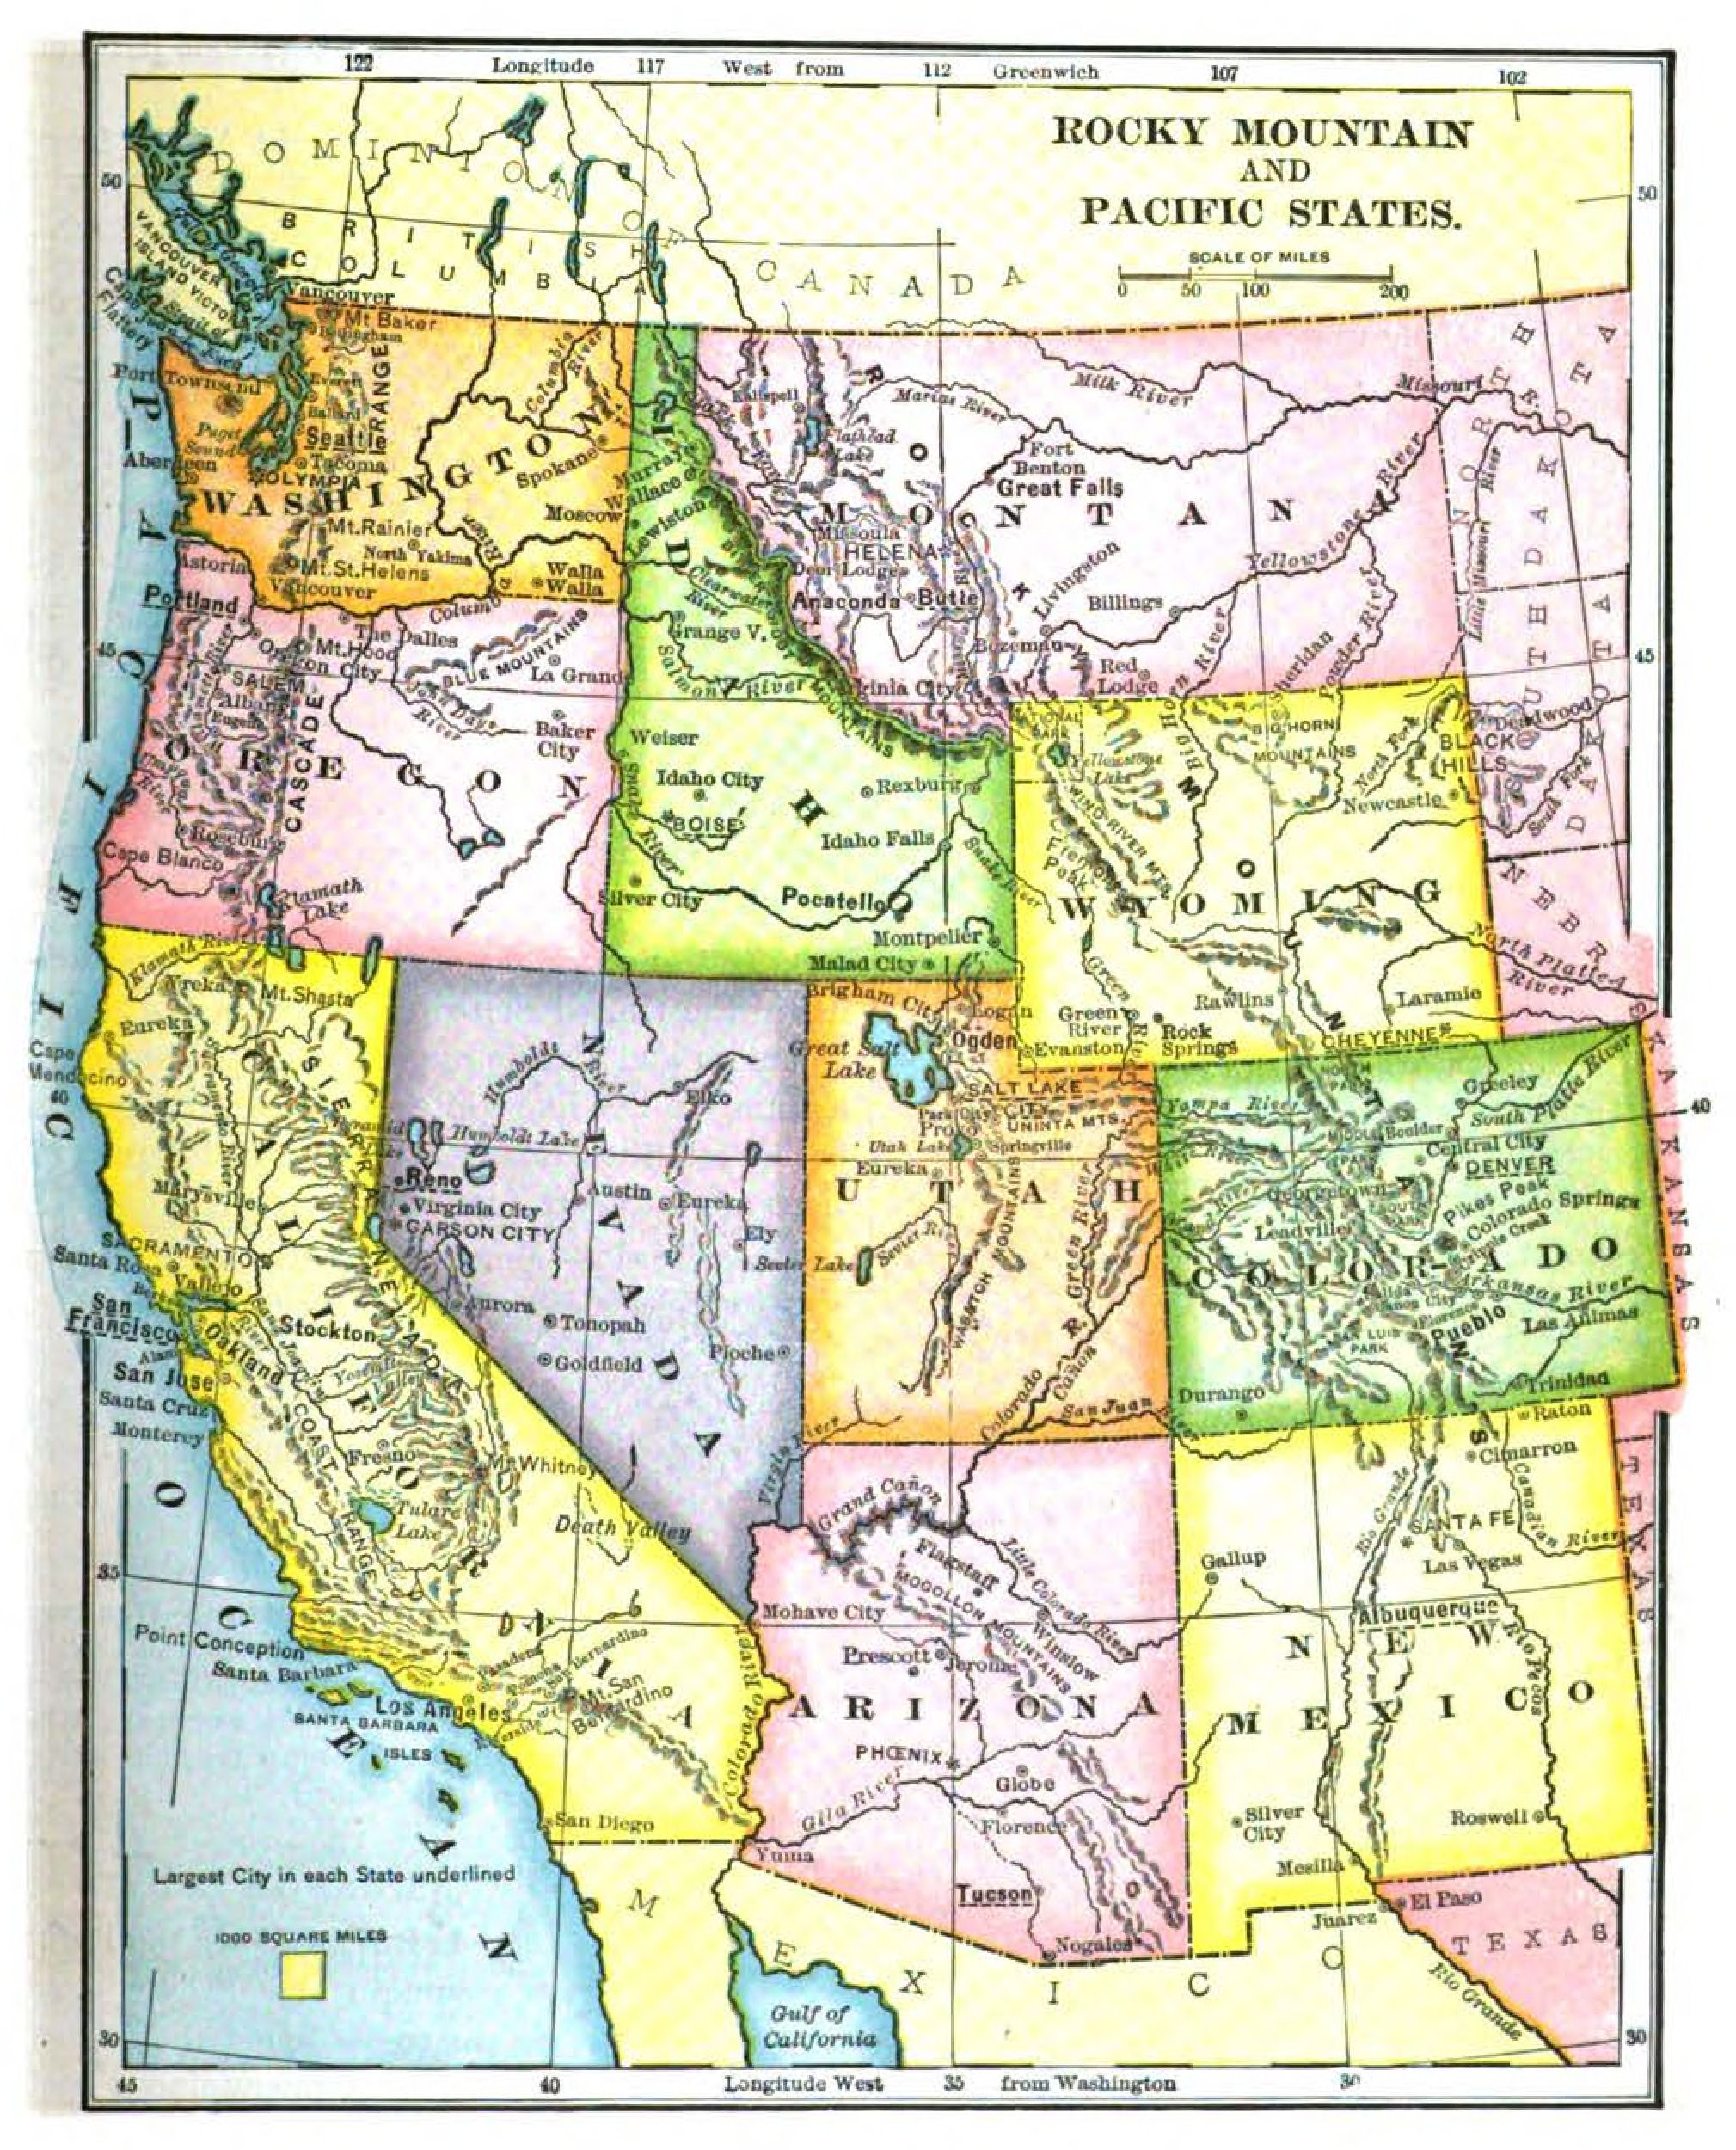 map of usa mountains and rivers with File Maury Geography 067a Pacific States on North America 2012 Sp additionally Starnberg Five Lake Region Germany together with File Maury Geography 067A Pacific States besides Unit 2 North America Presentation additionally Best Alaska Photo Locations.